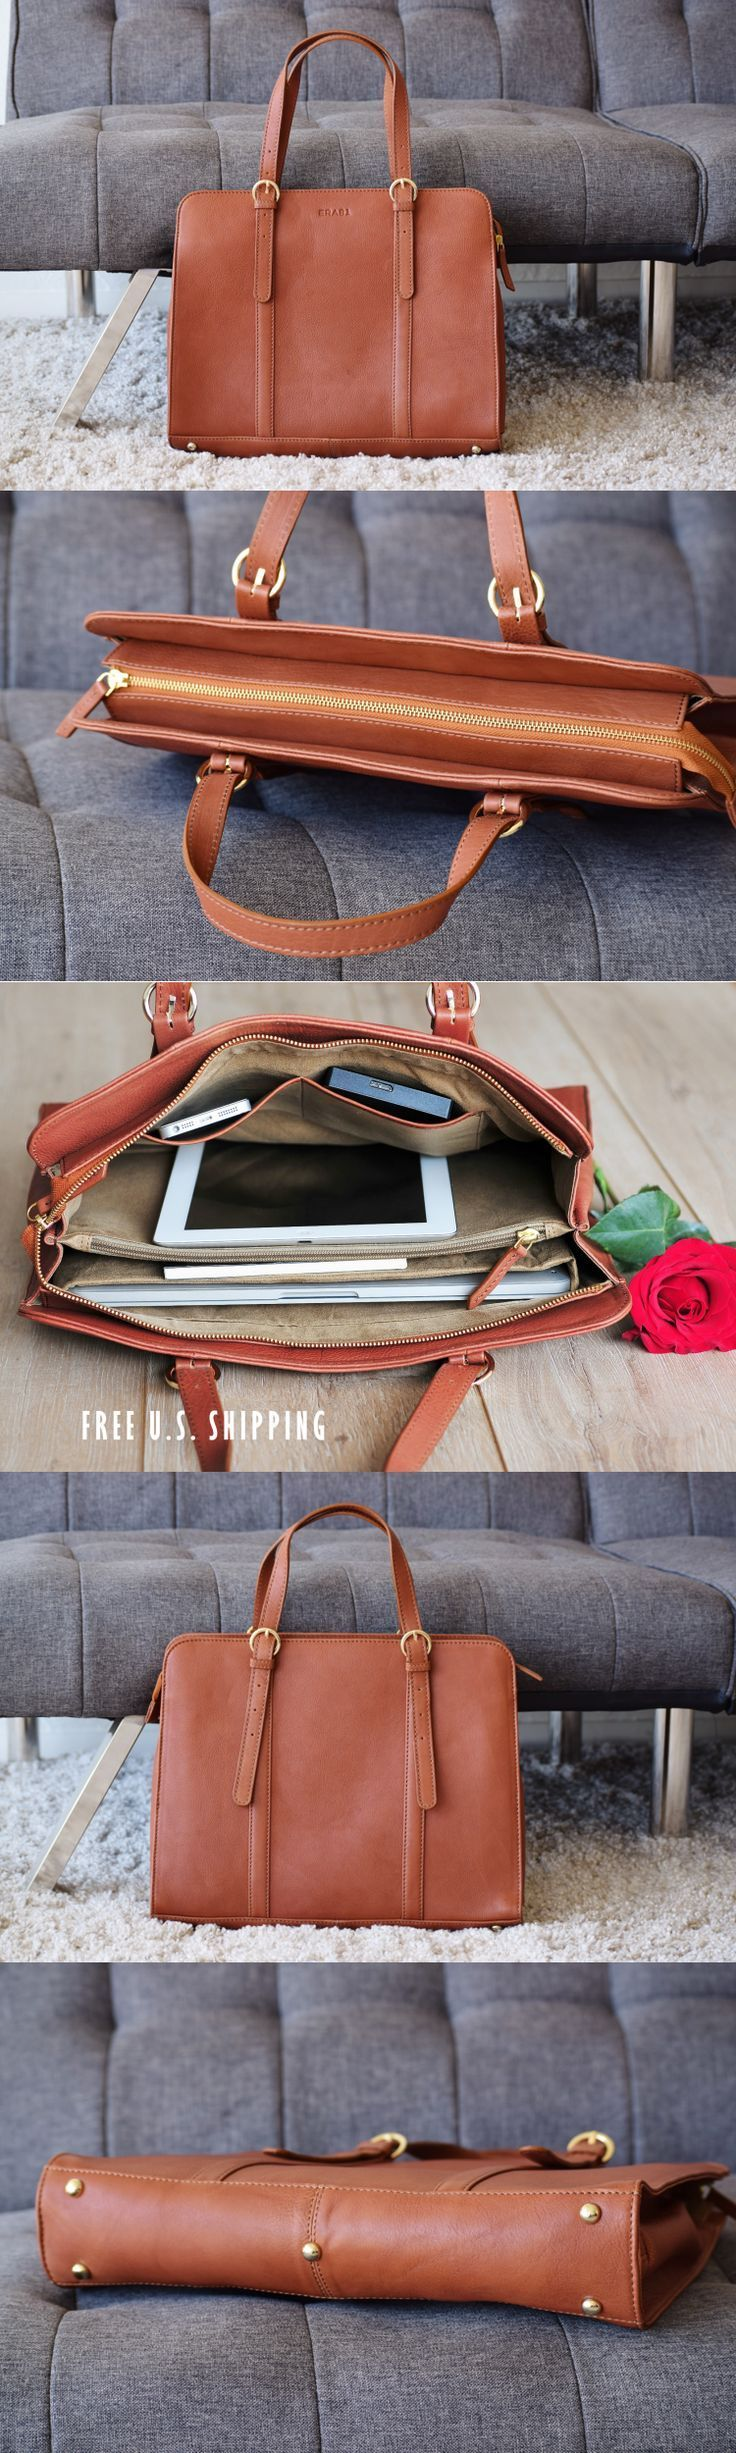 This minimalist laptop bag by #Era81 transitions effortlessly from an elegant shoulder bag to a stylish handbag with the help of the adjustable handle - bags leather sale, bag store, back bags online shopping *sponsored https://www.pinterest.com/bags_bag/ https://www.pinterest.com/explore/bags/ https://www.pinterest.com/bags_bag/leather-messenger-bag/ https://www.walmart.com/cp/bags-accessories/1045799